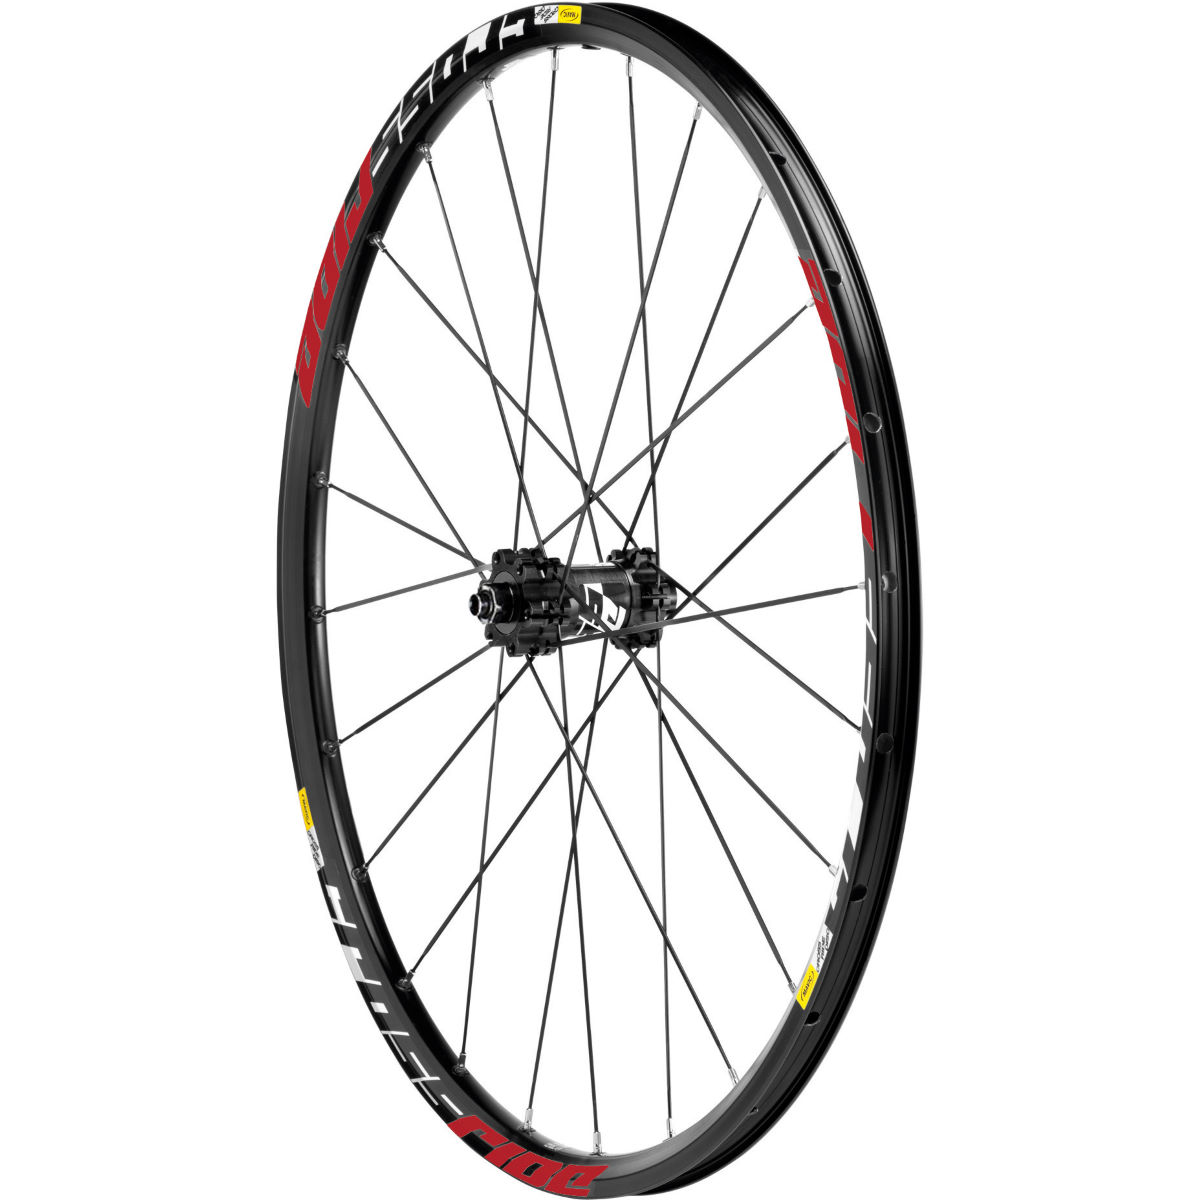 Mavic Crossride Center Lock QR Front MTB Wheel - Front Wheels